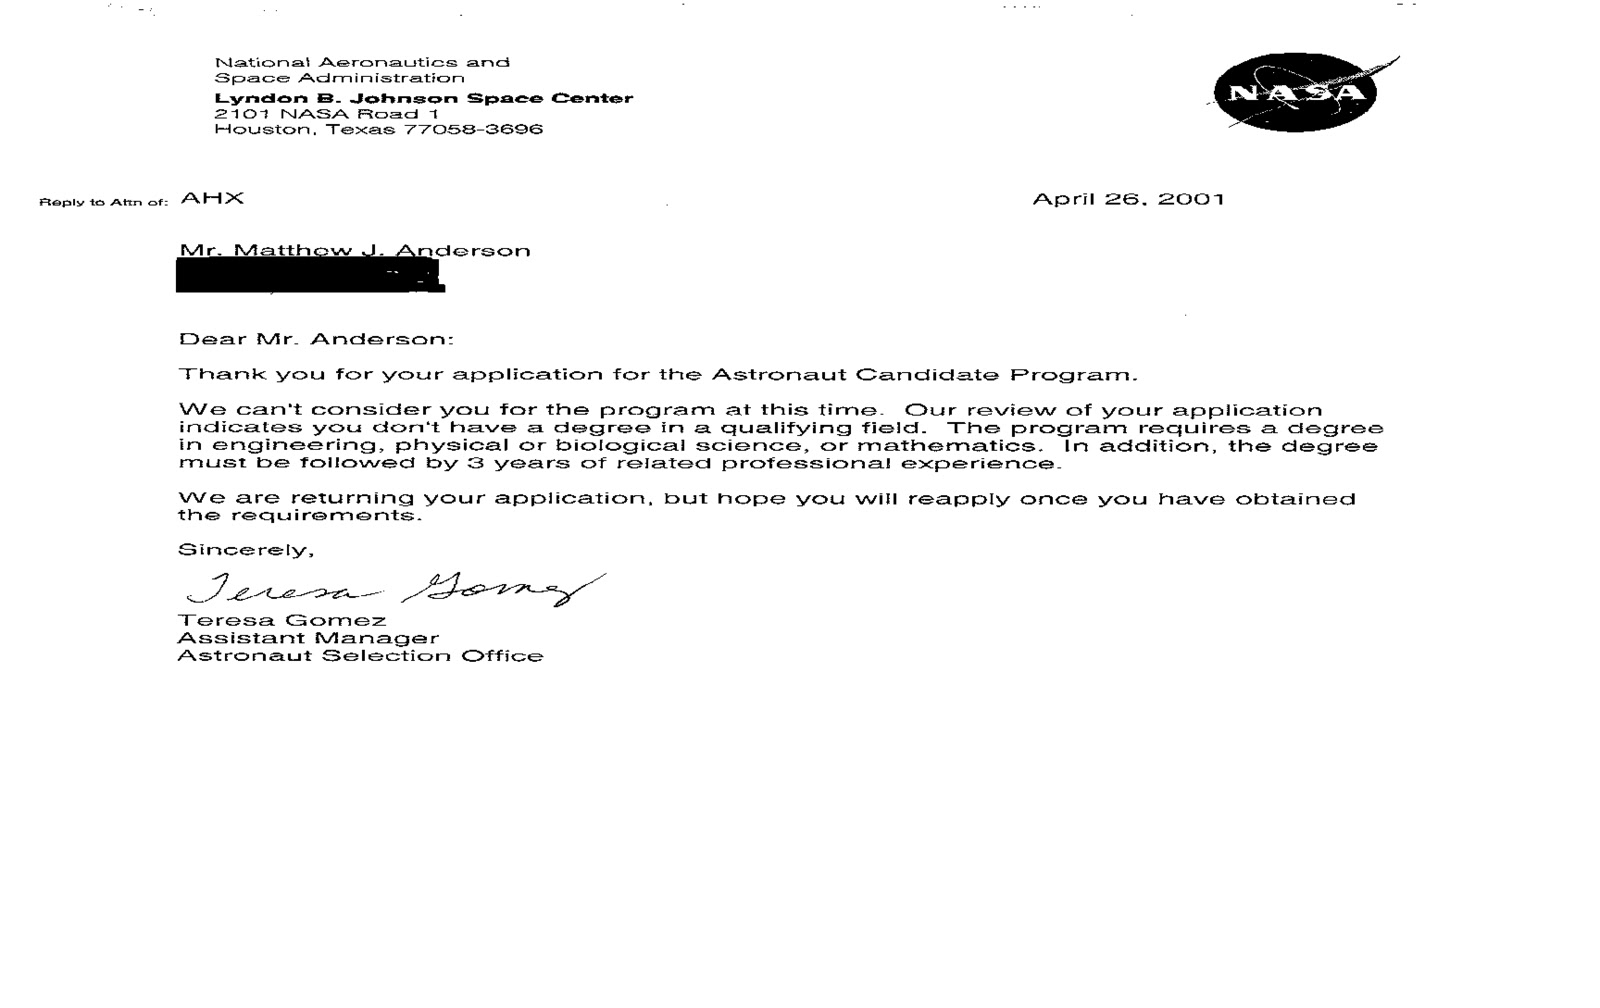 Sample rejection letter rejection rejection letter sle basilosaur letter of rejection business proposal rejection letter com writing a altavistaventures Images